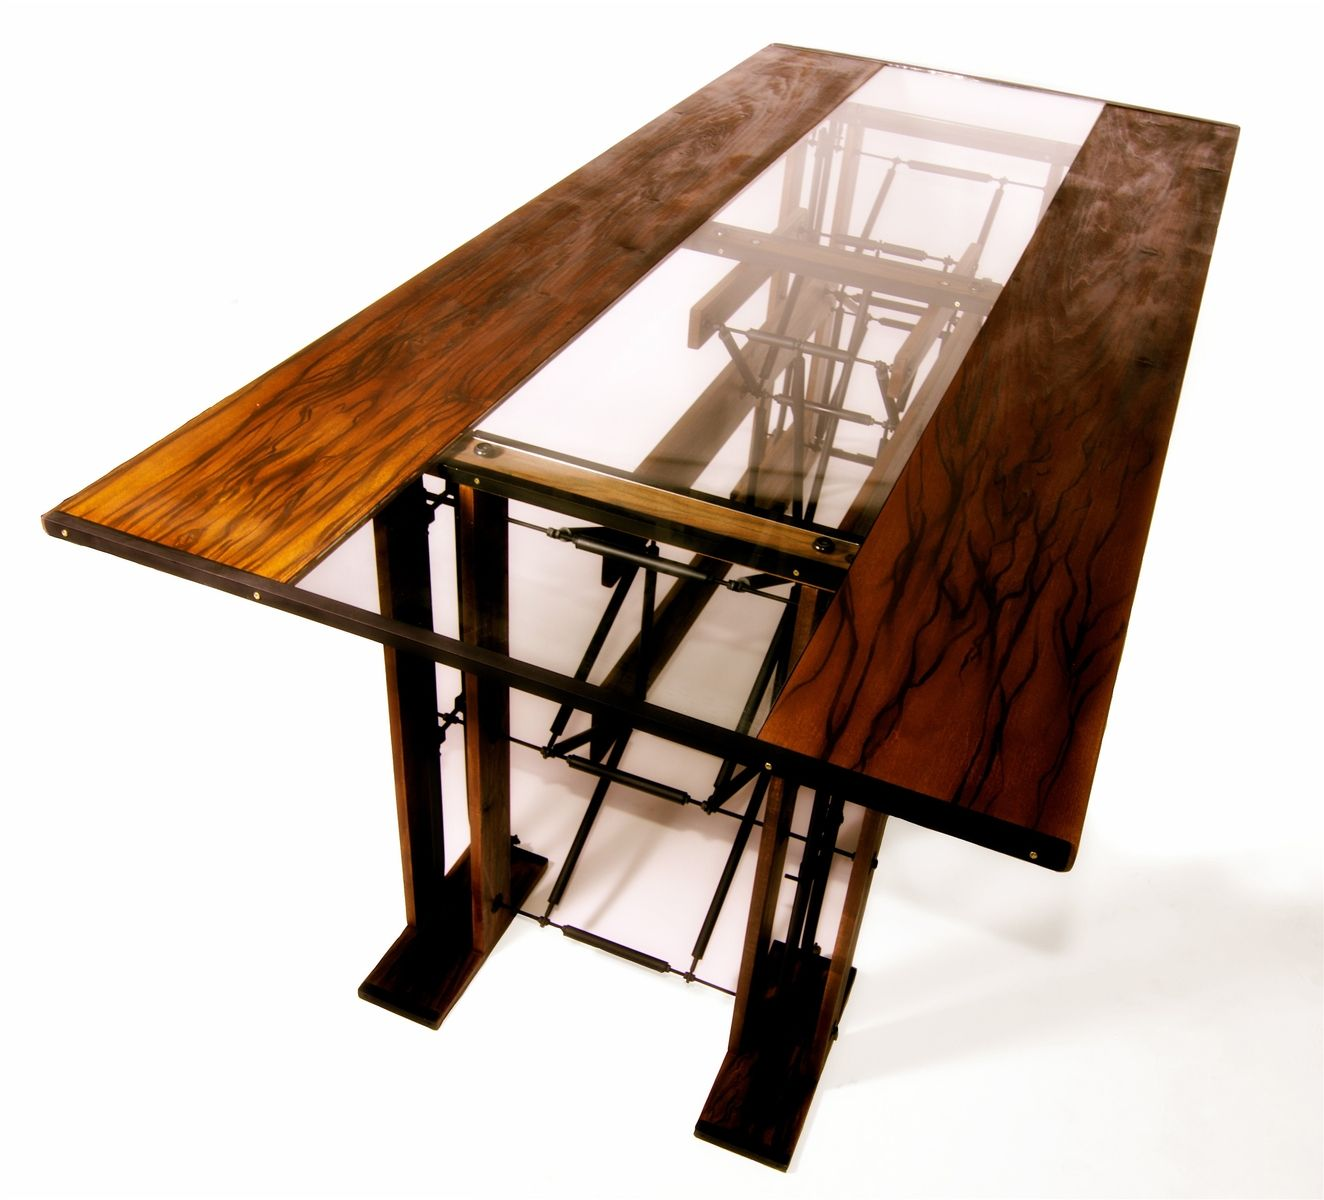 Hand made custom contemporary industrial eclectic dining for Dining table designs in wood and glass